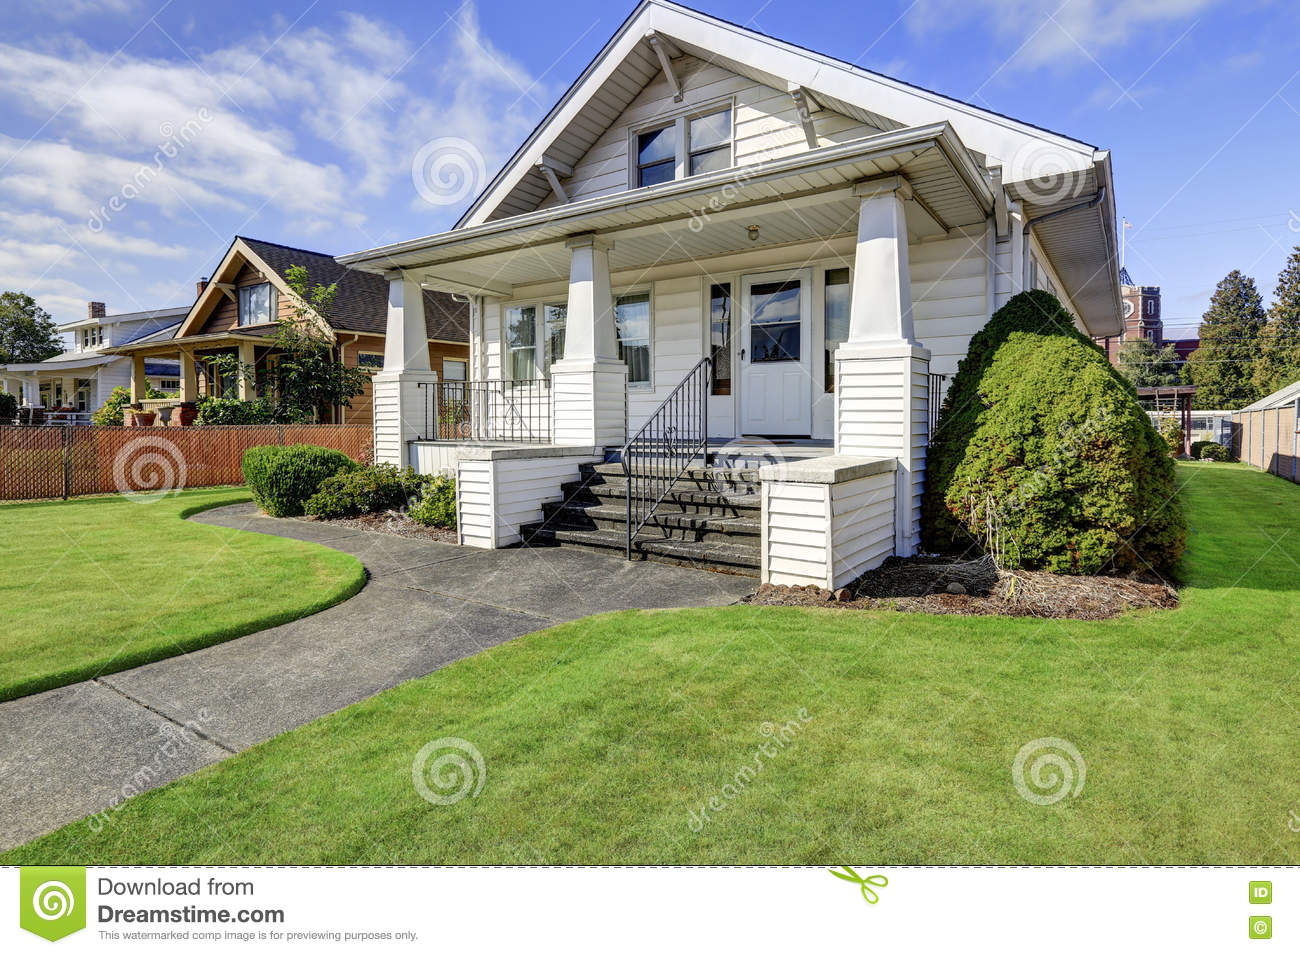 Covered front porch craftsman style home royalty free stock image - Typical American Craftsman Style House With Column Porch Royalty Free Stock Photo